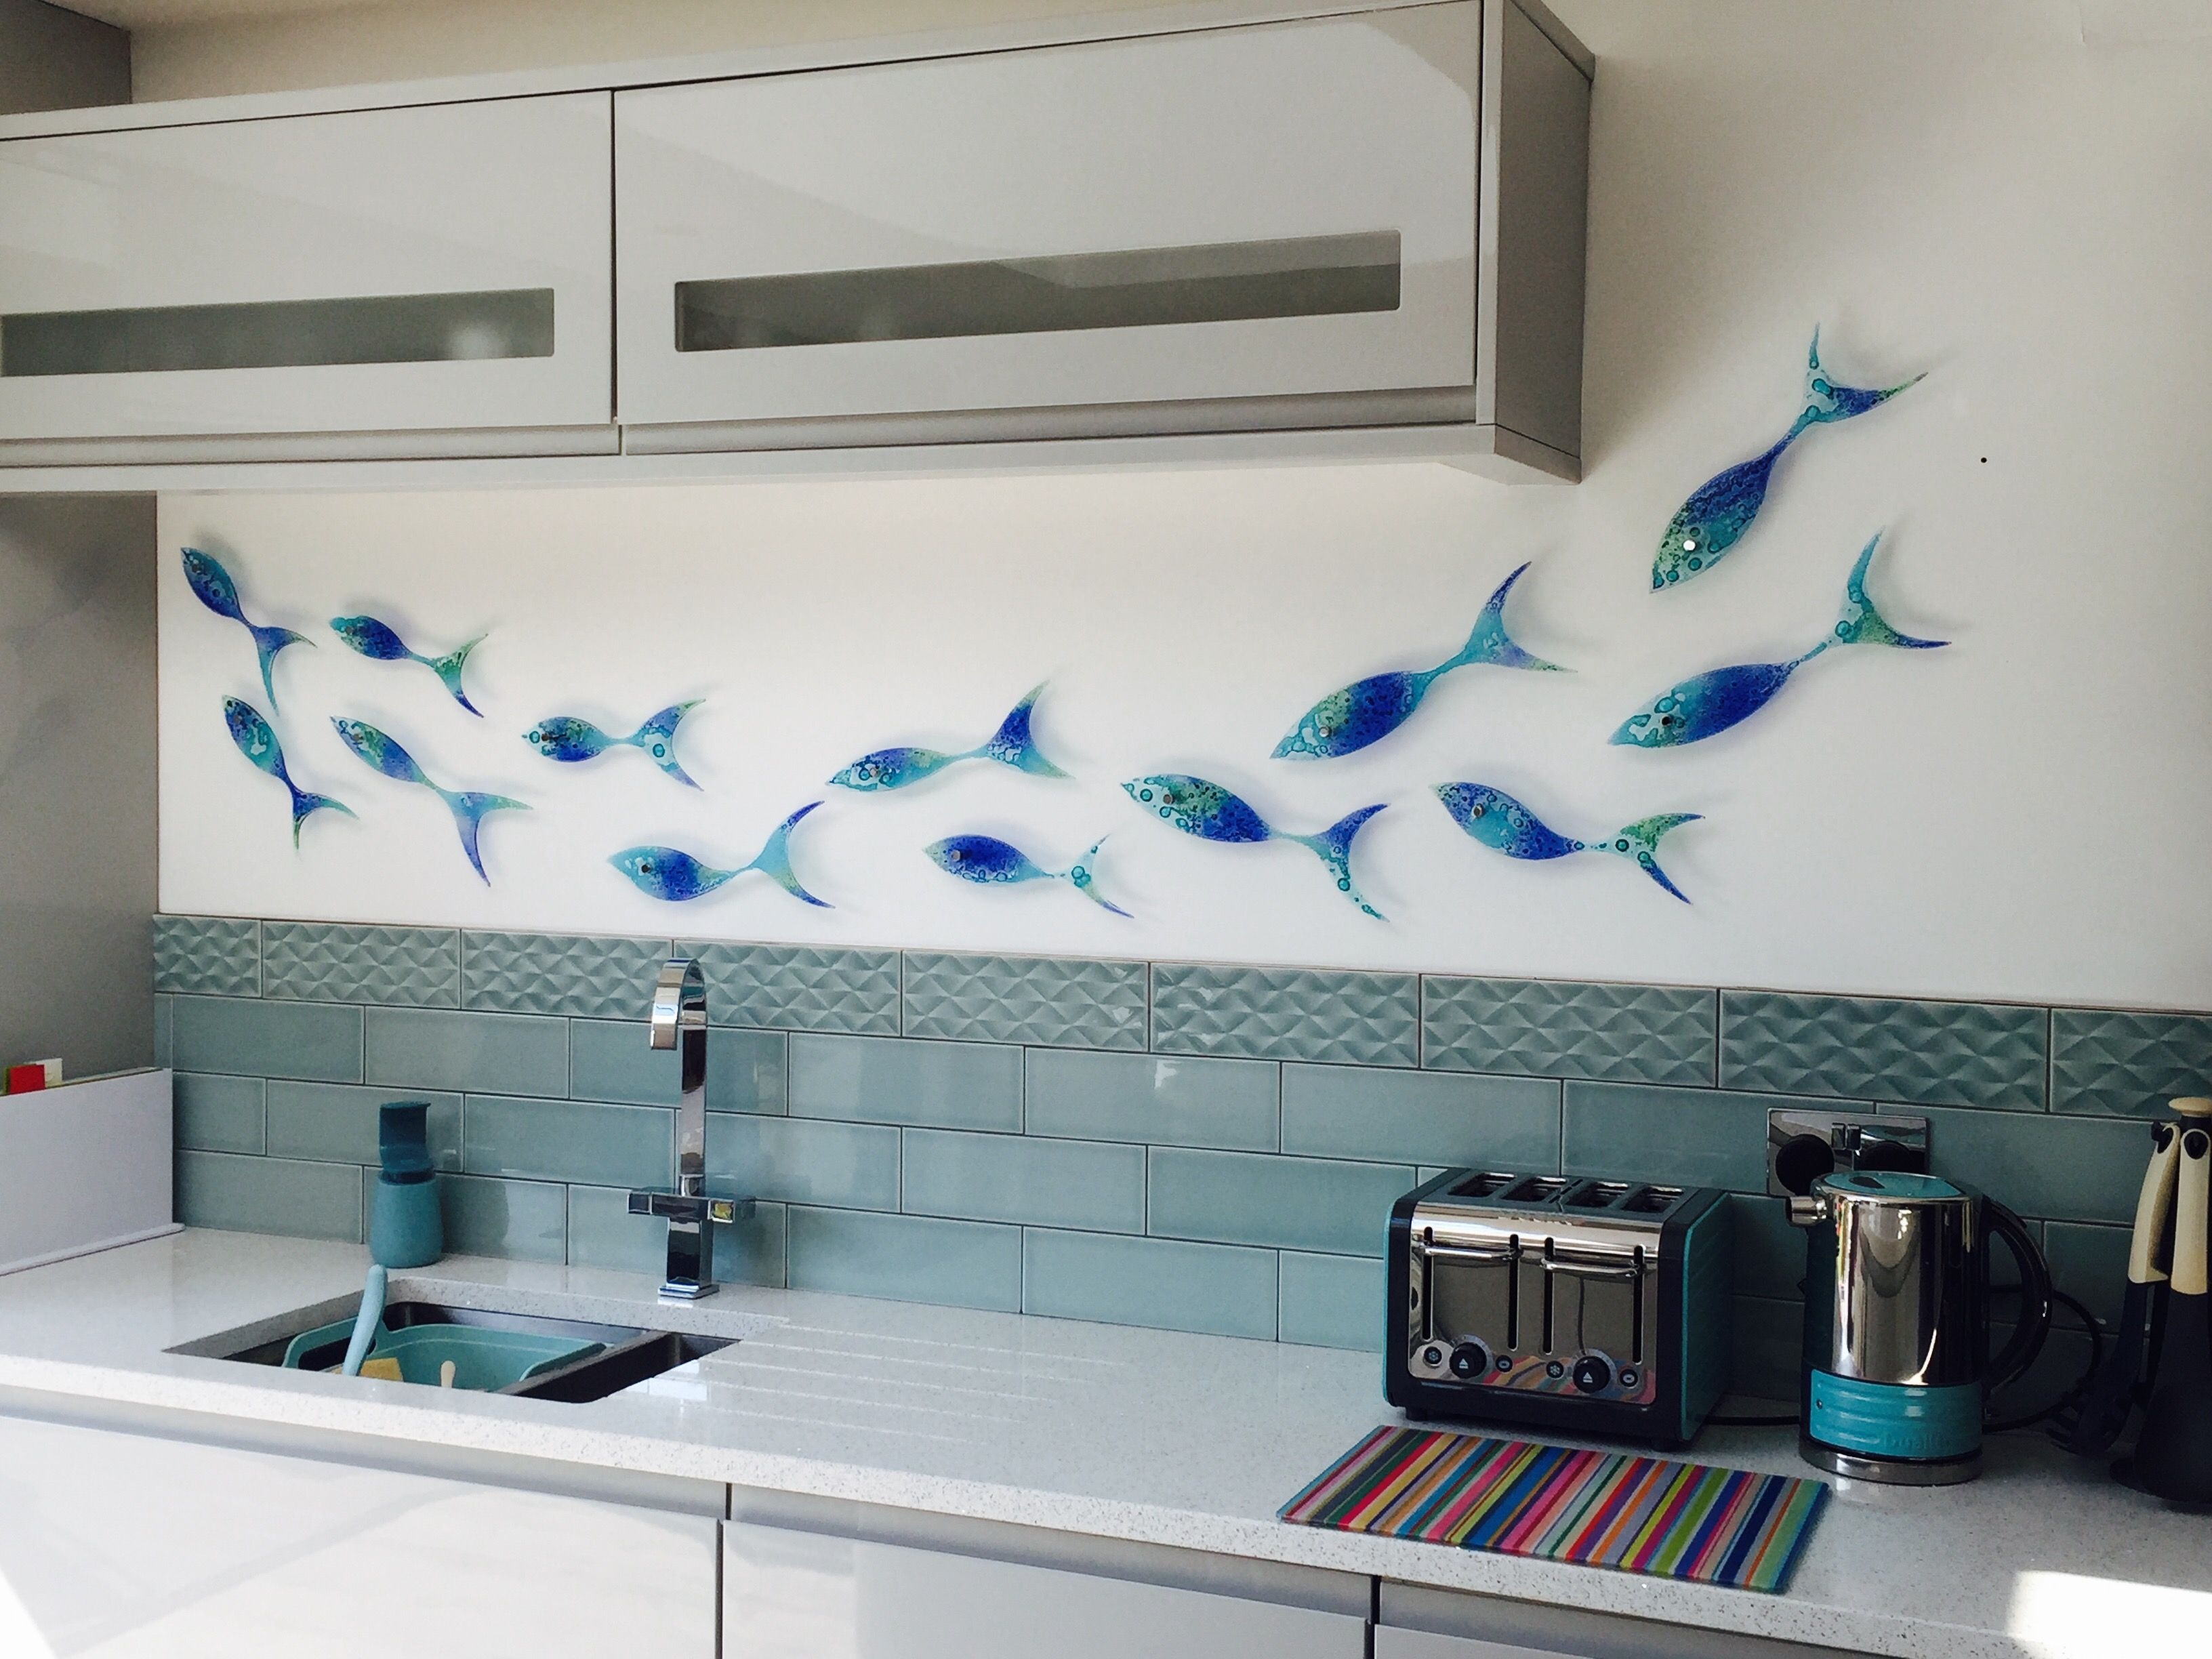 Jo Downs Shoaling Fish in Kitchens | Remodeling Ideas | Pinterest ...